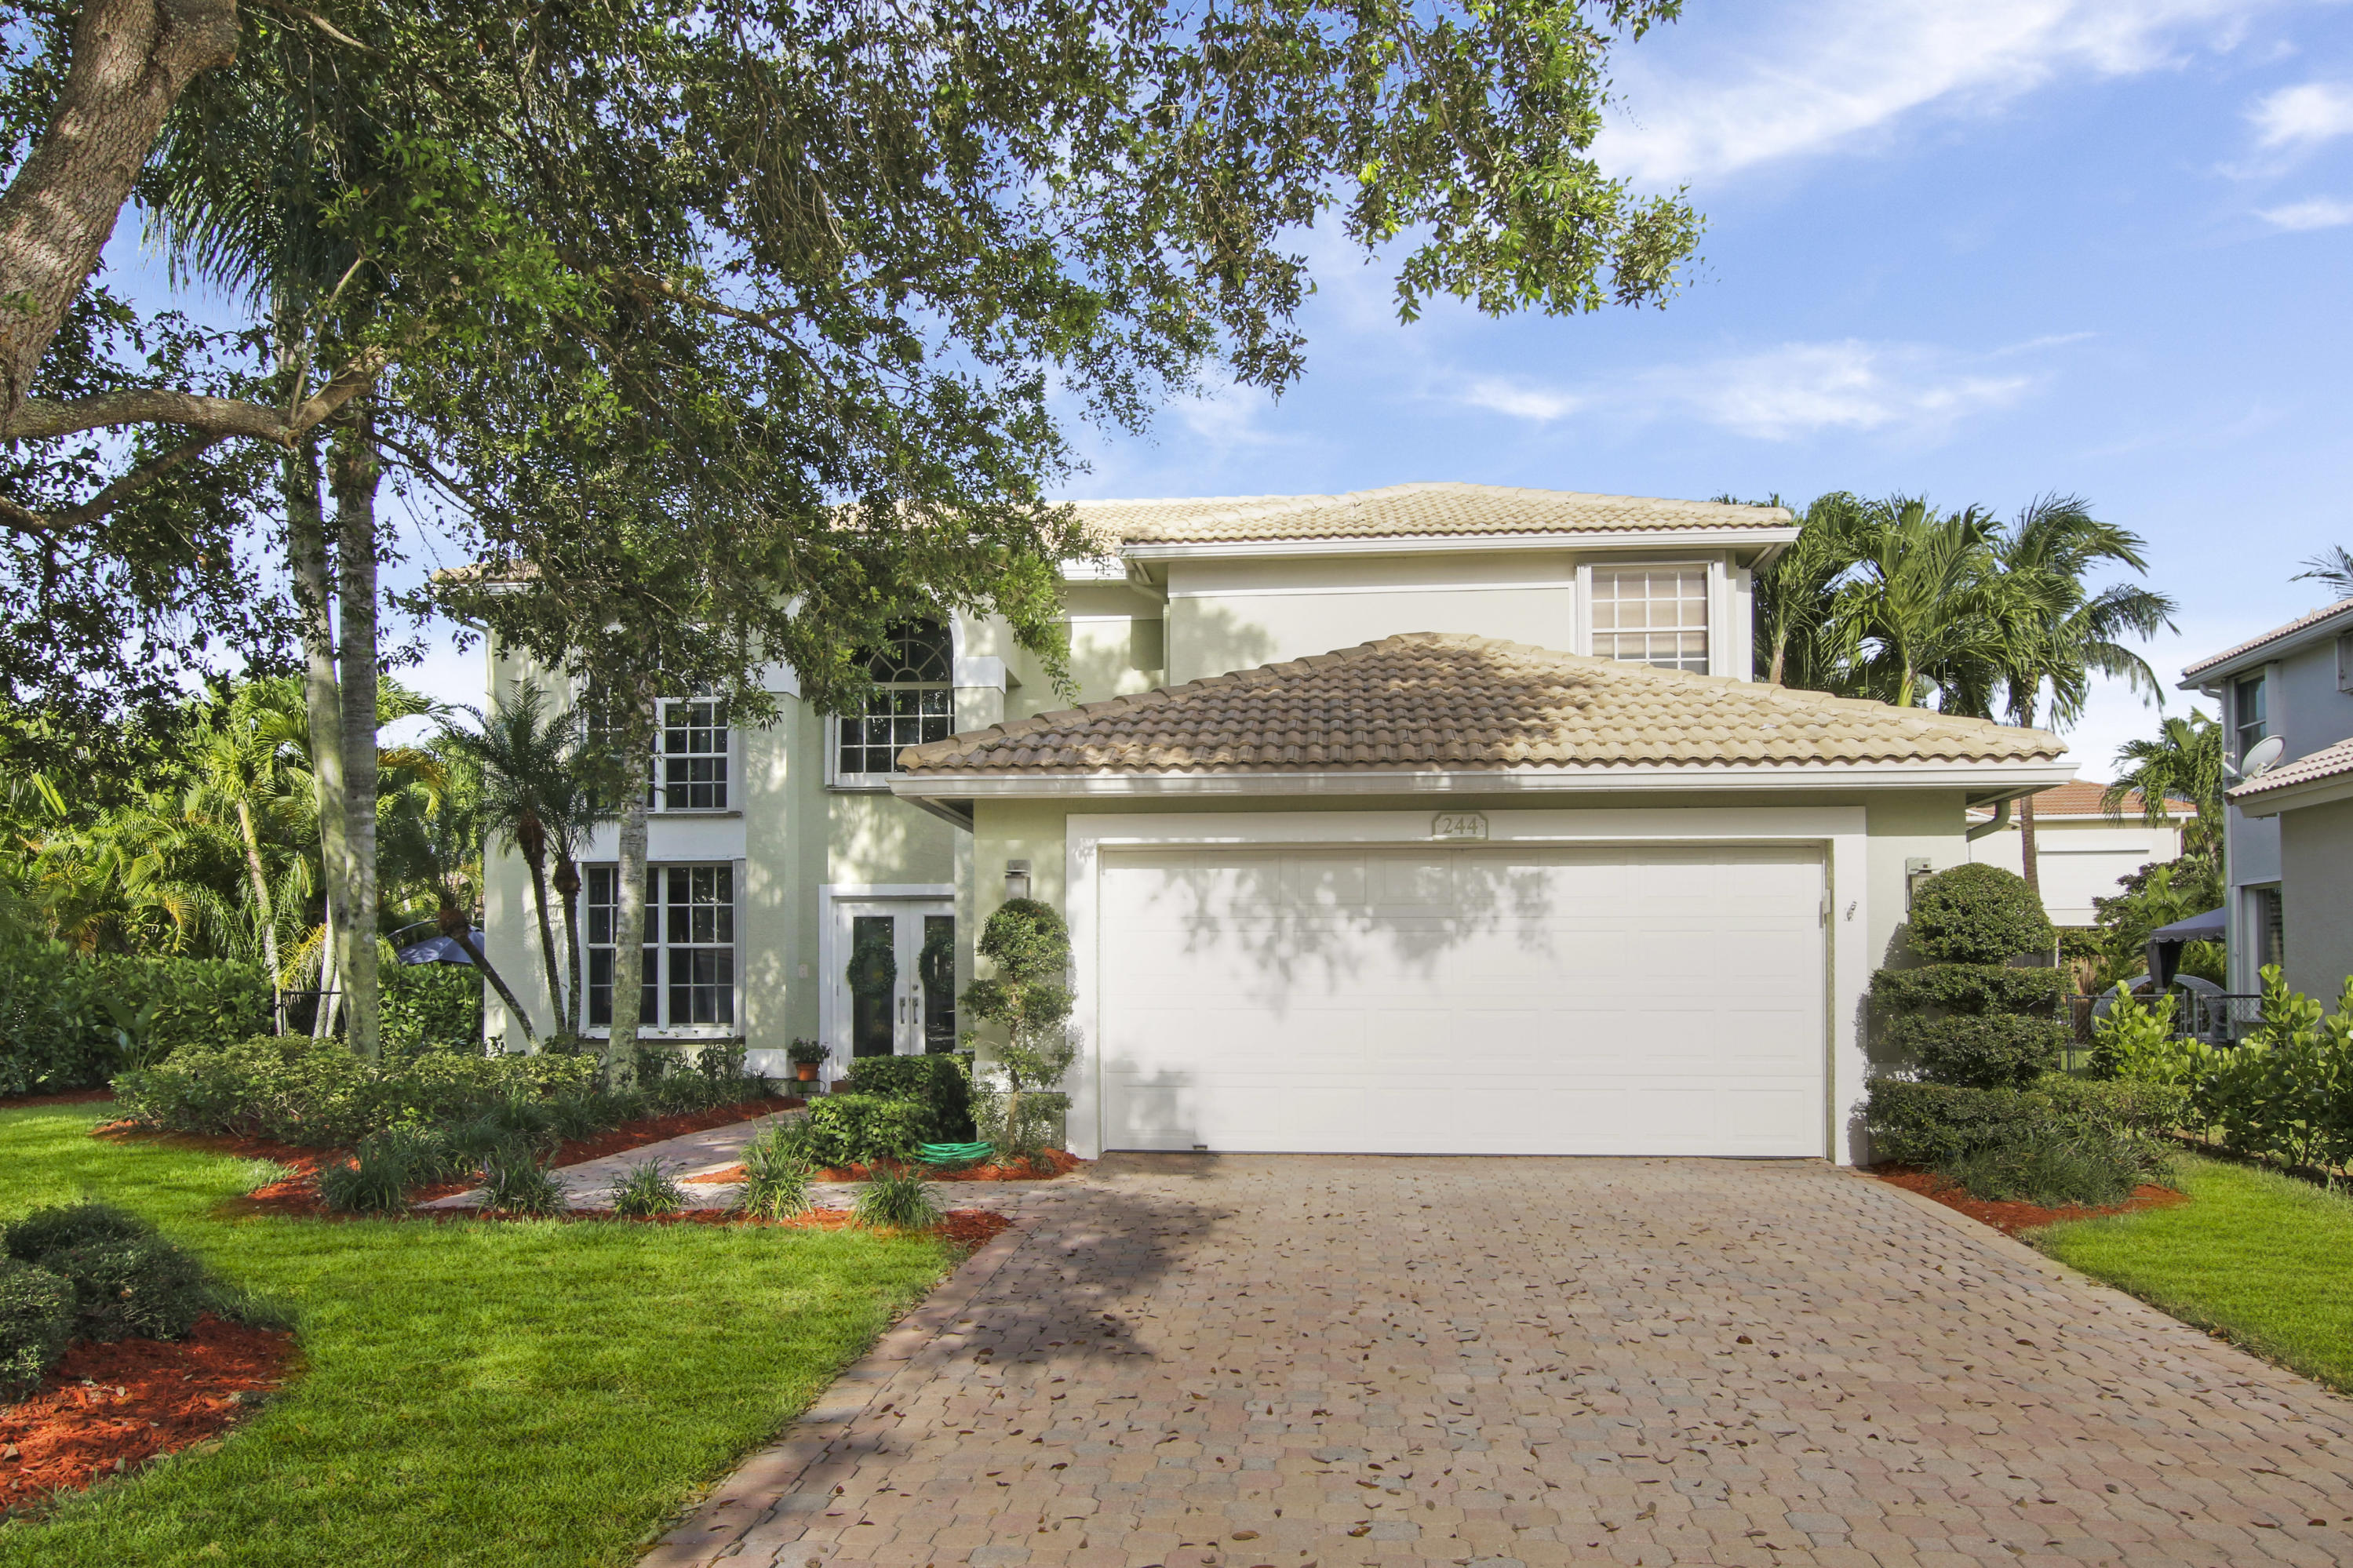 Photo of 244 Spoonbill Lane S, Jupiter, FL 33458